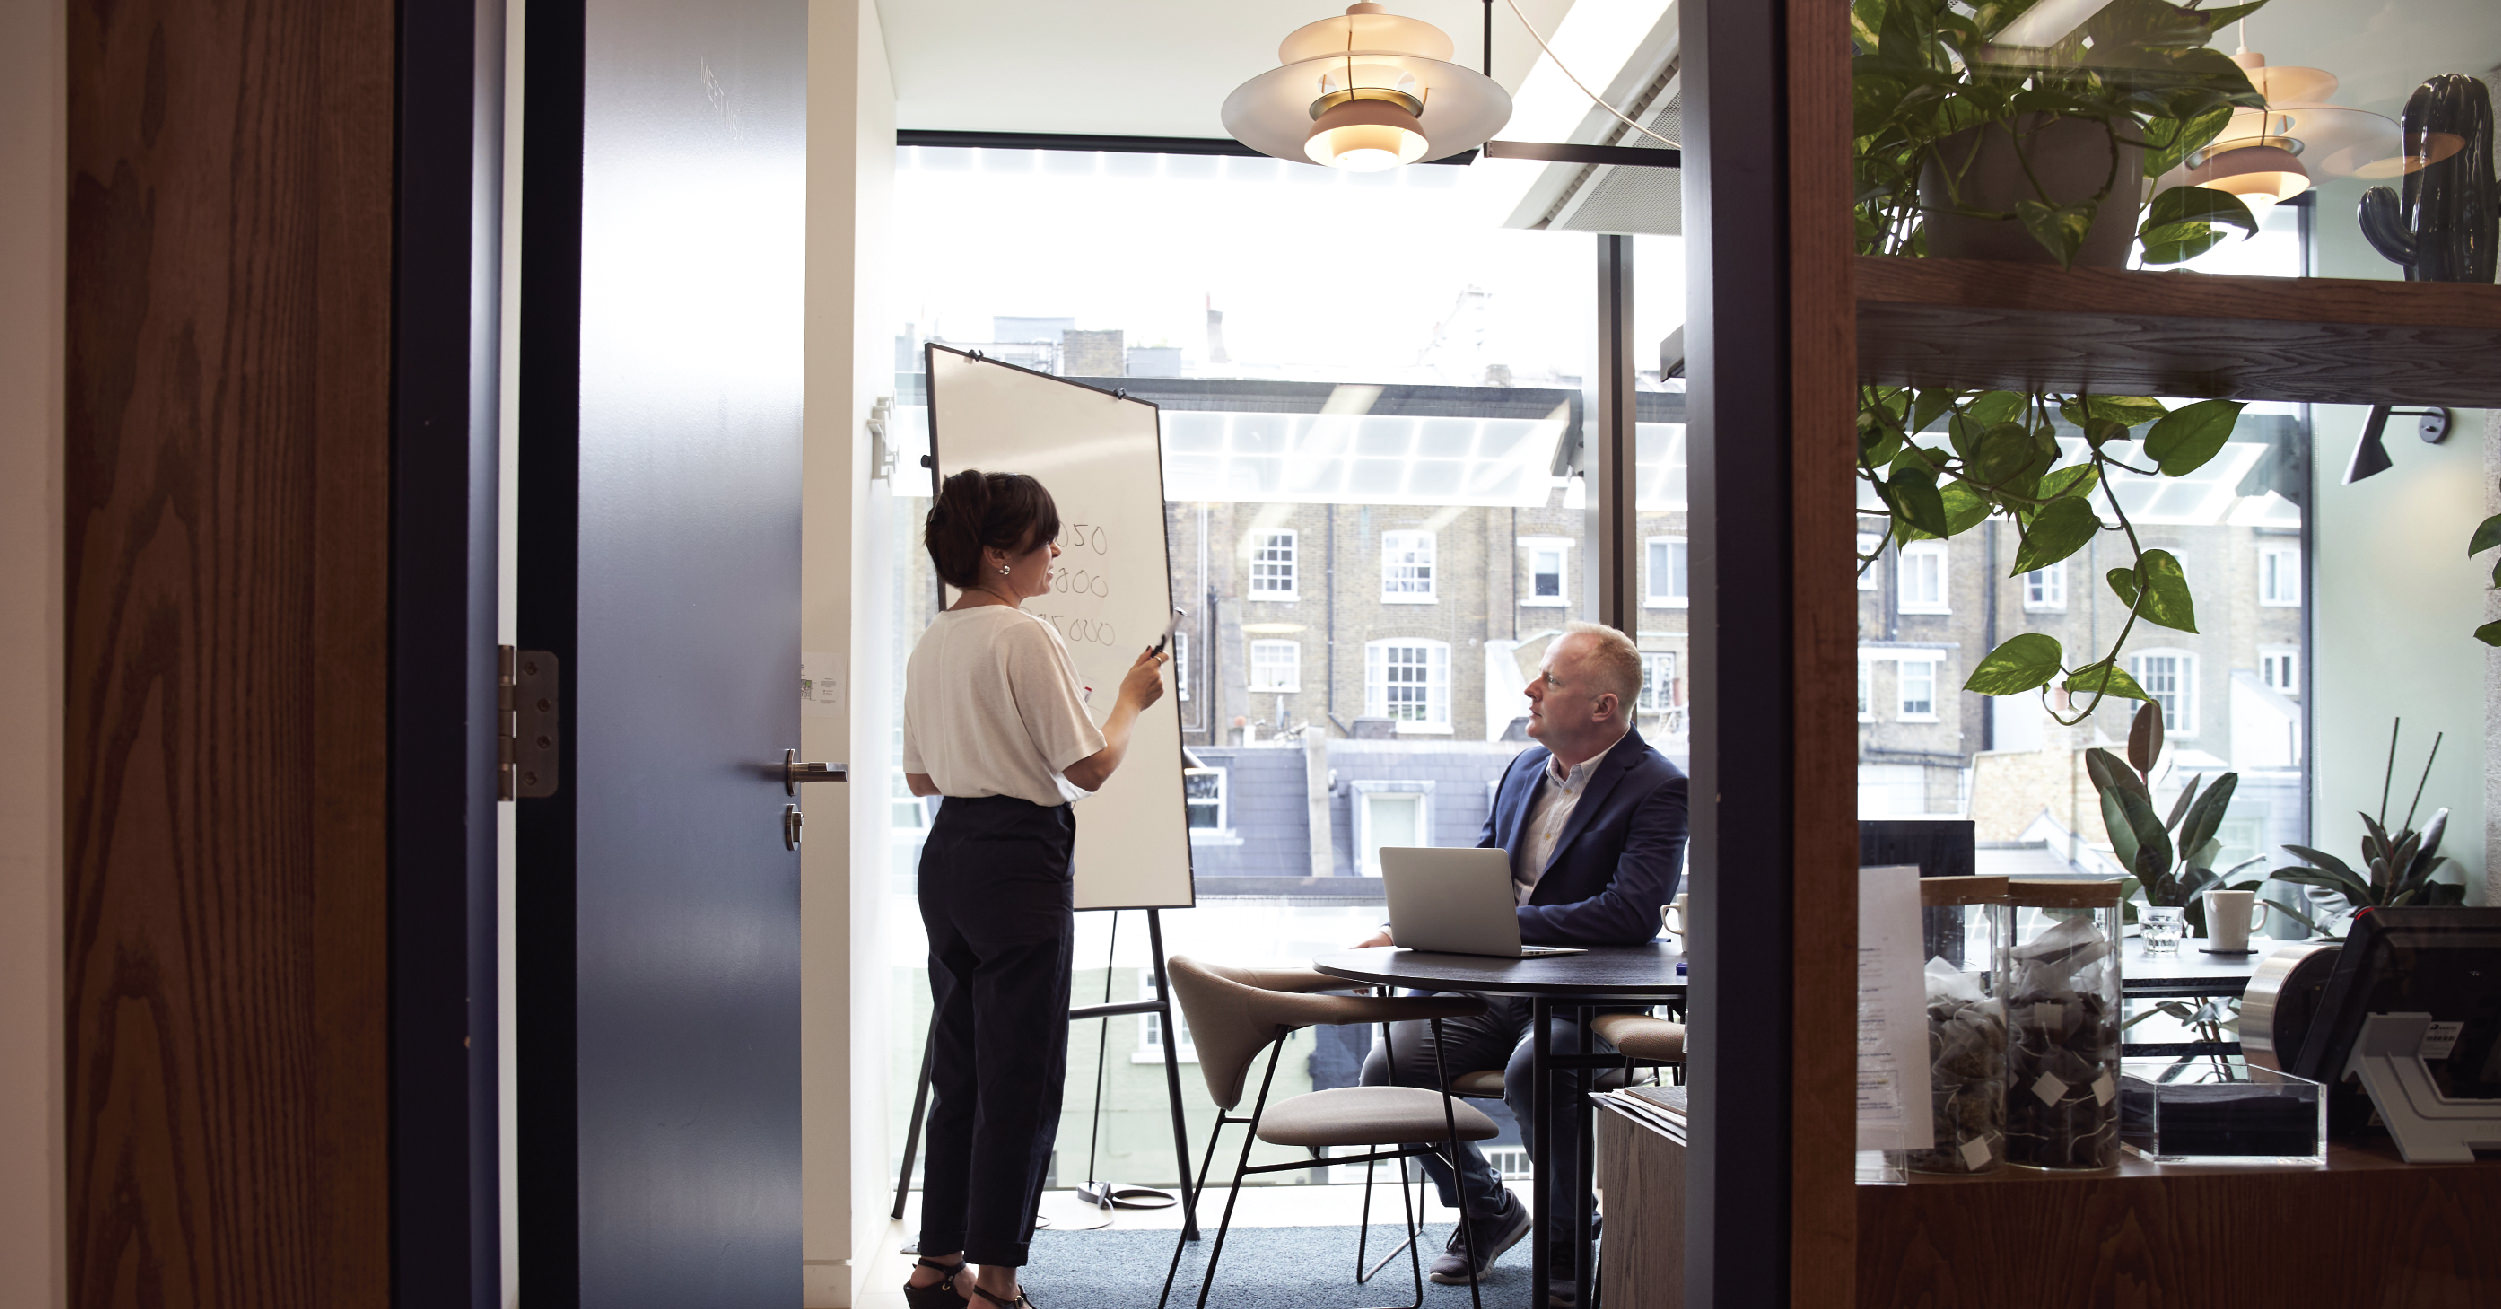 Assertive woman presenting to a man in a meeting room with a whiteboard